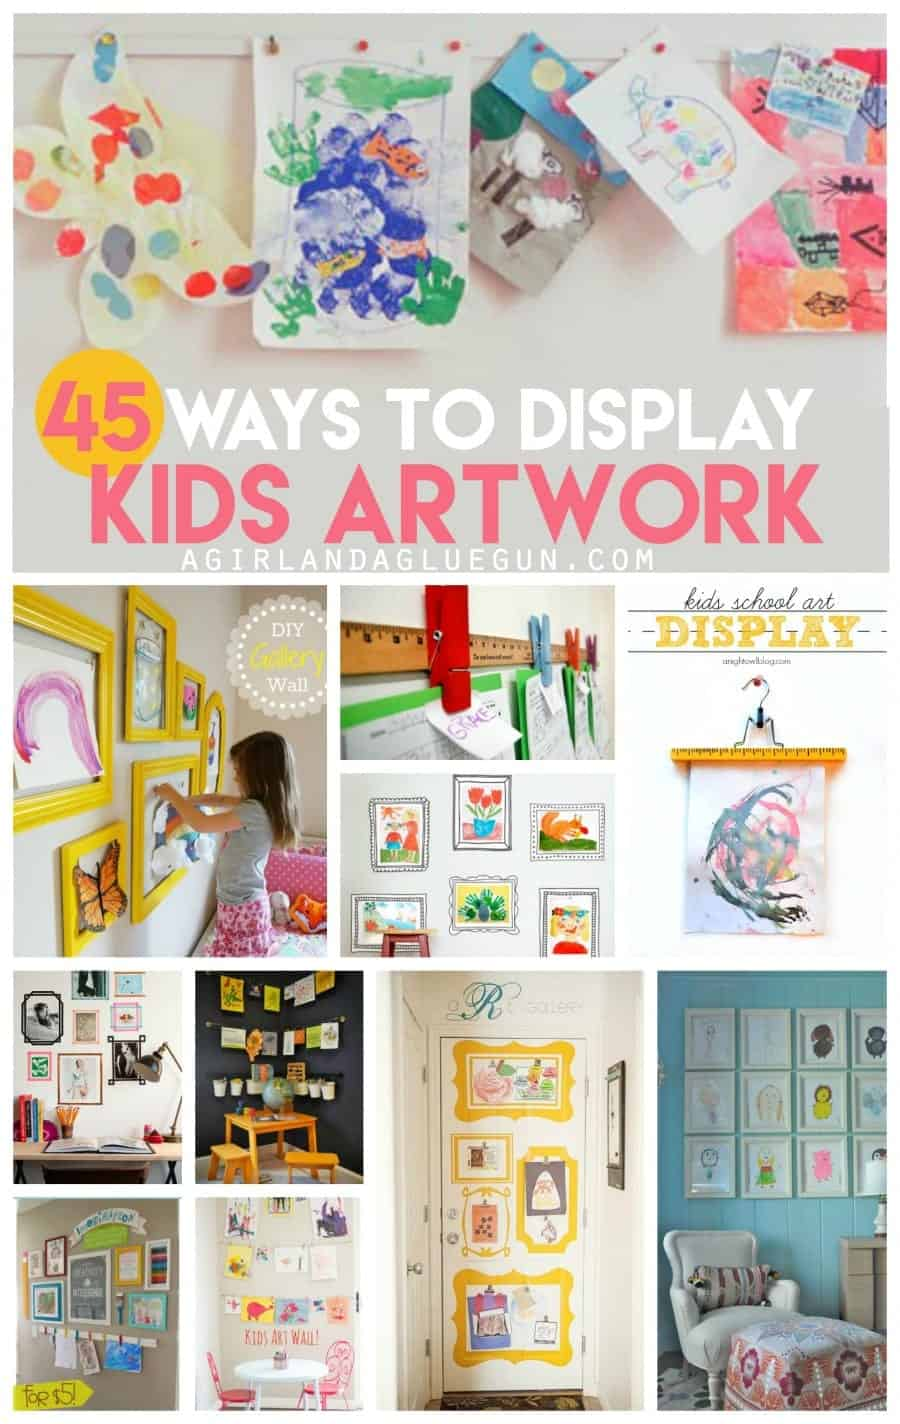 45 totally fun and unique ways to display kids artwork